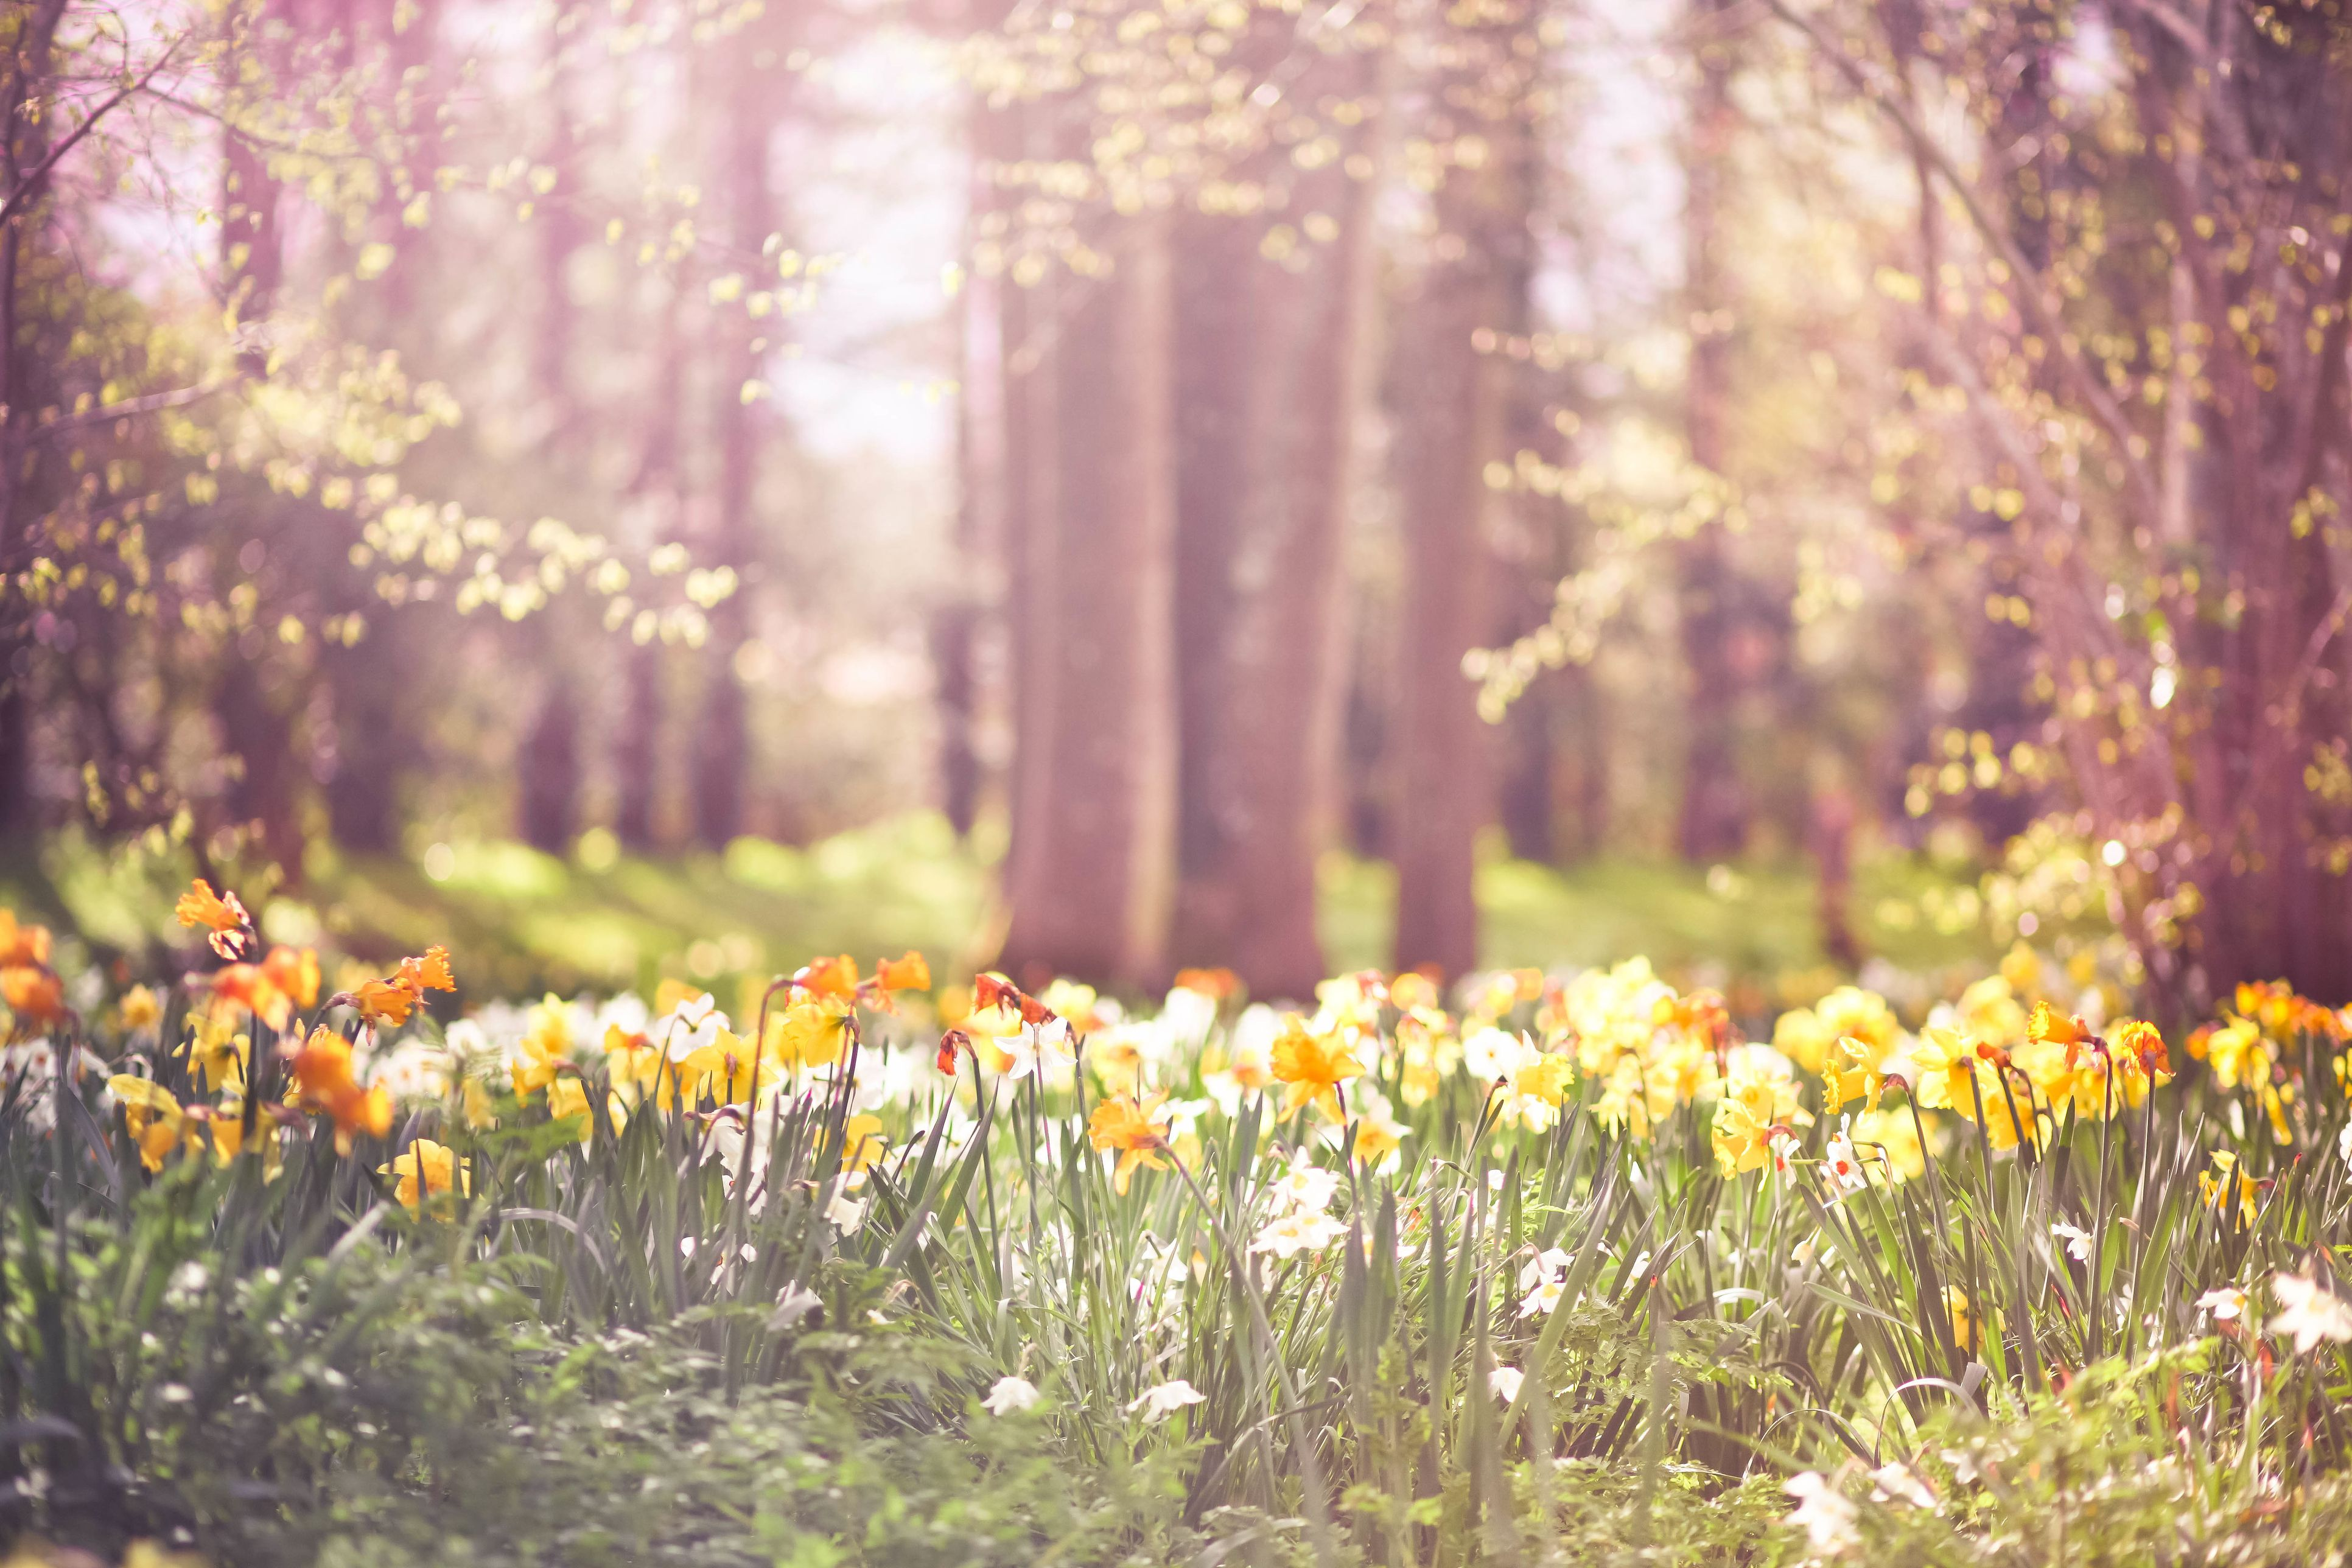 Spring is off to a good start as the Met Office says it's set to warm up this week